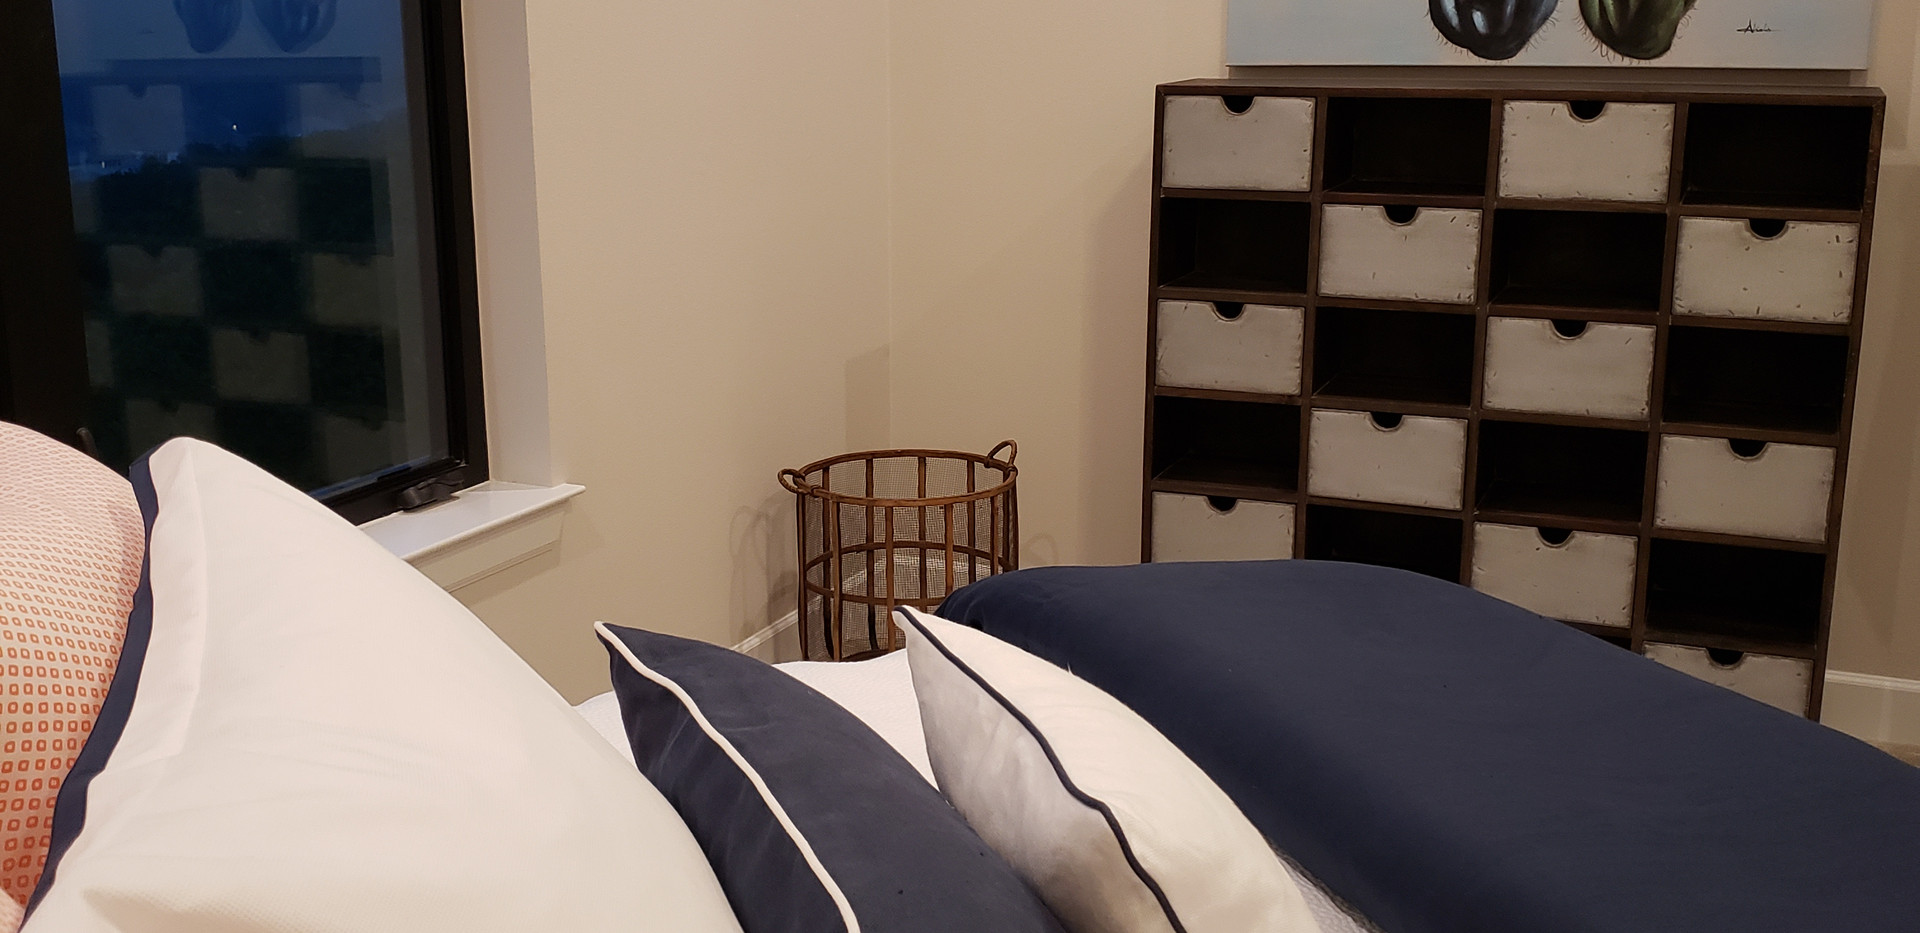 Parade of Homes Austin - Boy's bedroom